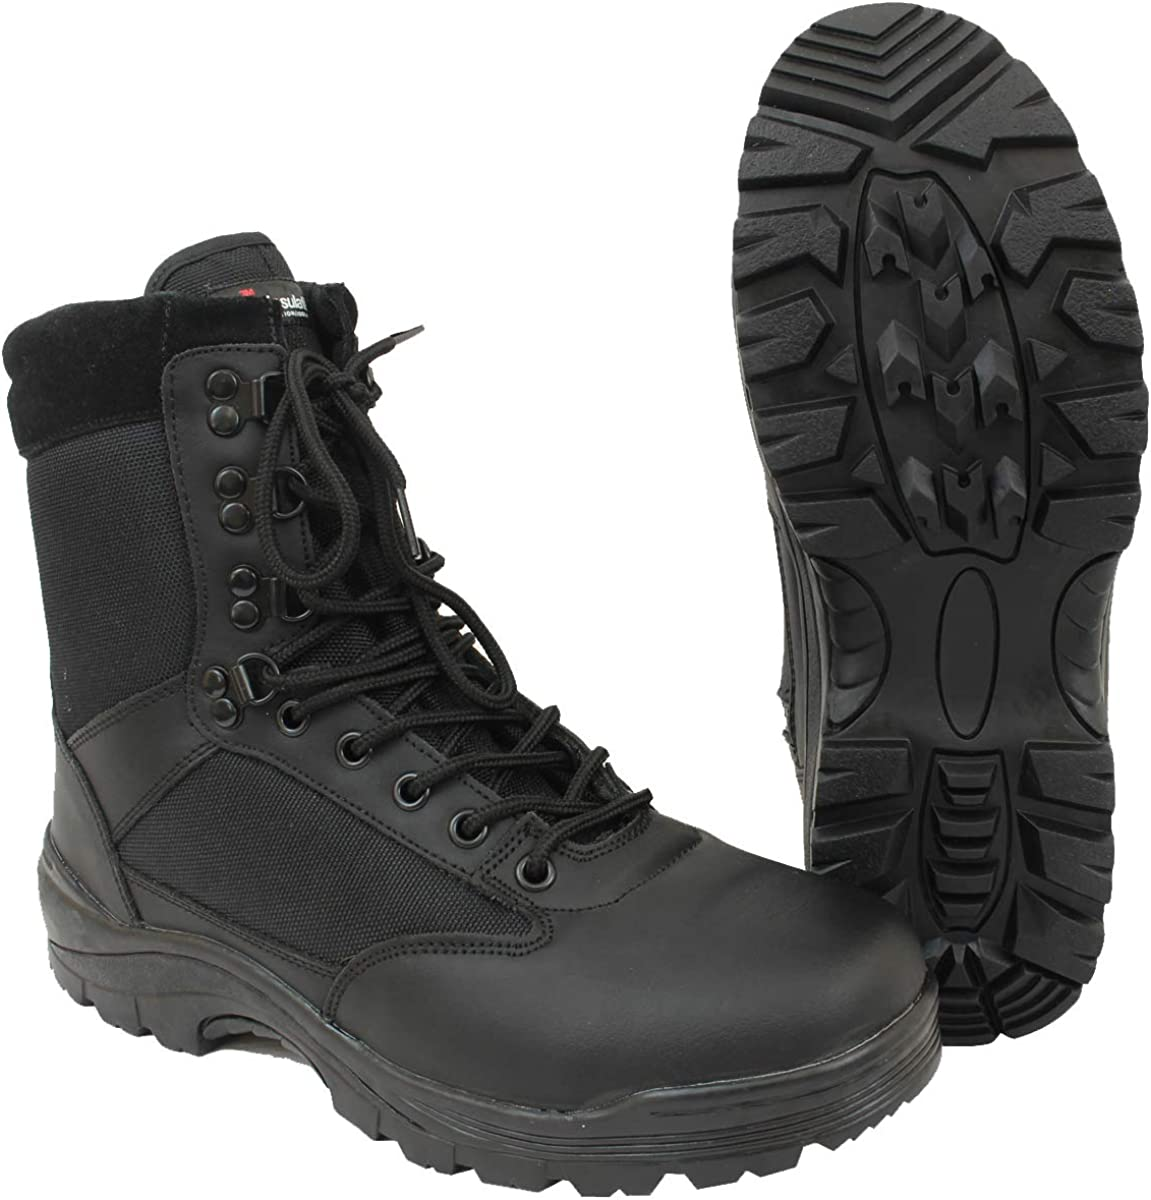 Mil-Tec Dual Zipped Black Tactical Washington Mall Boots Size 10 US It is very popular